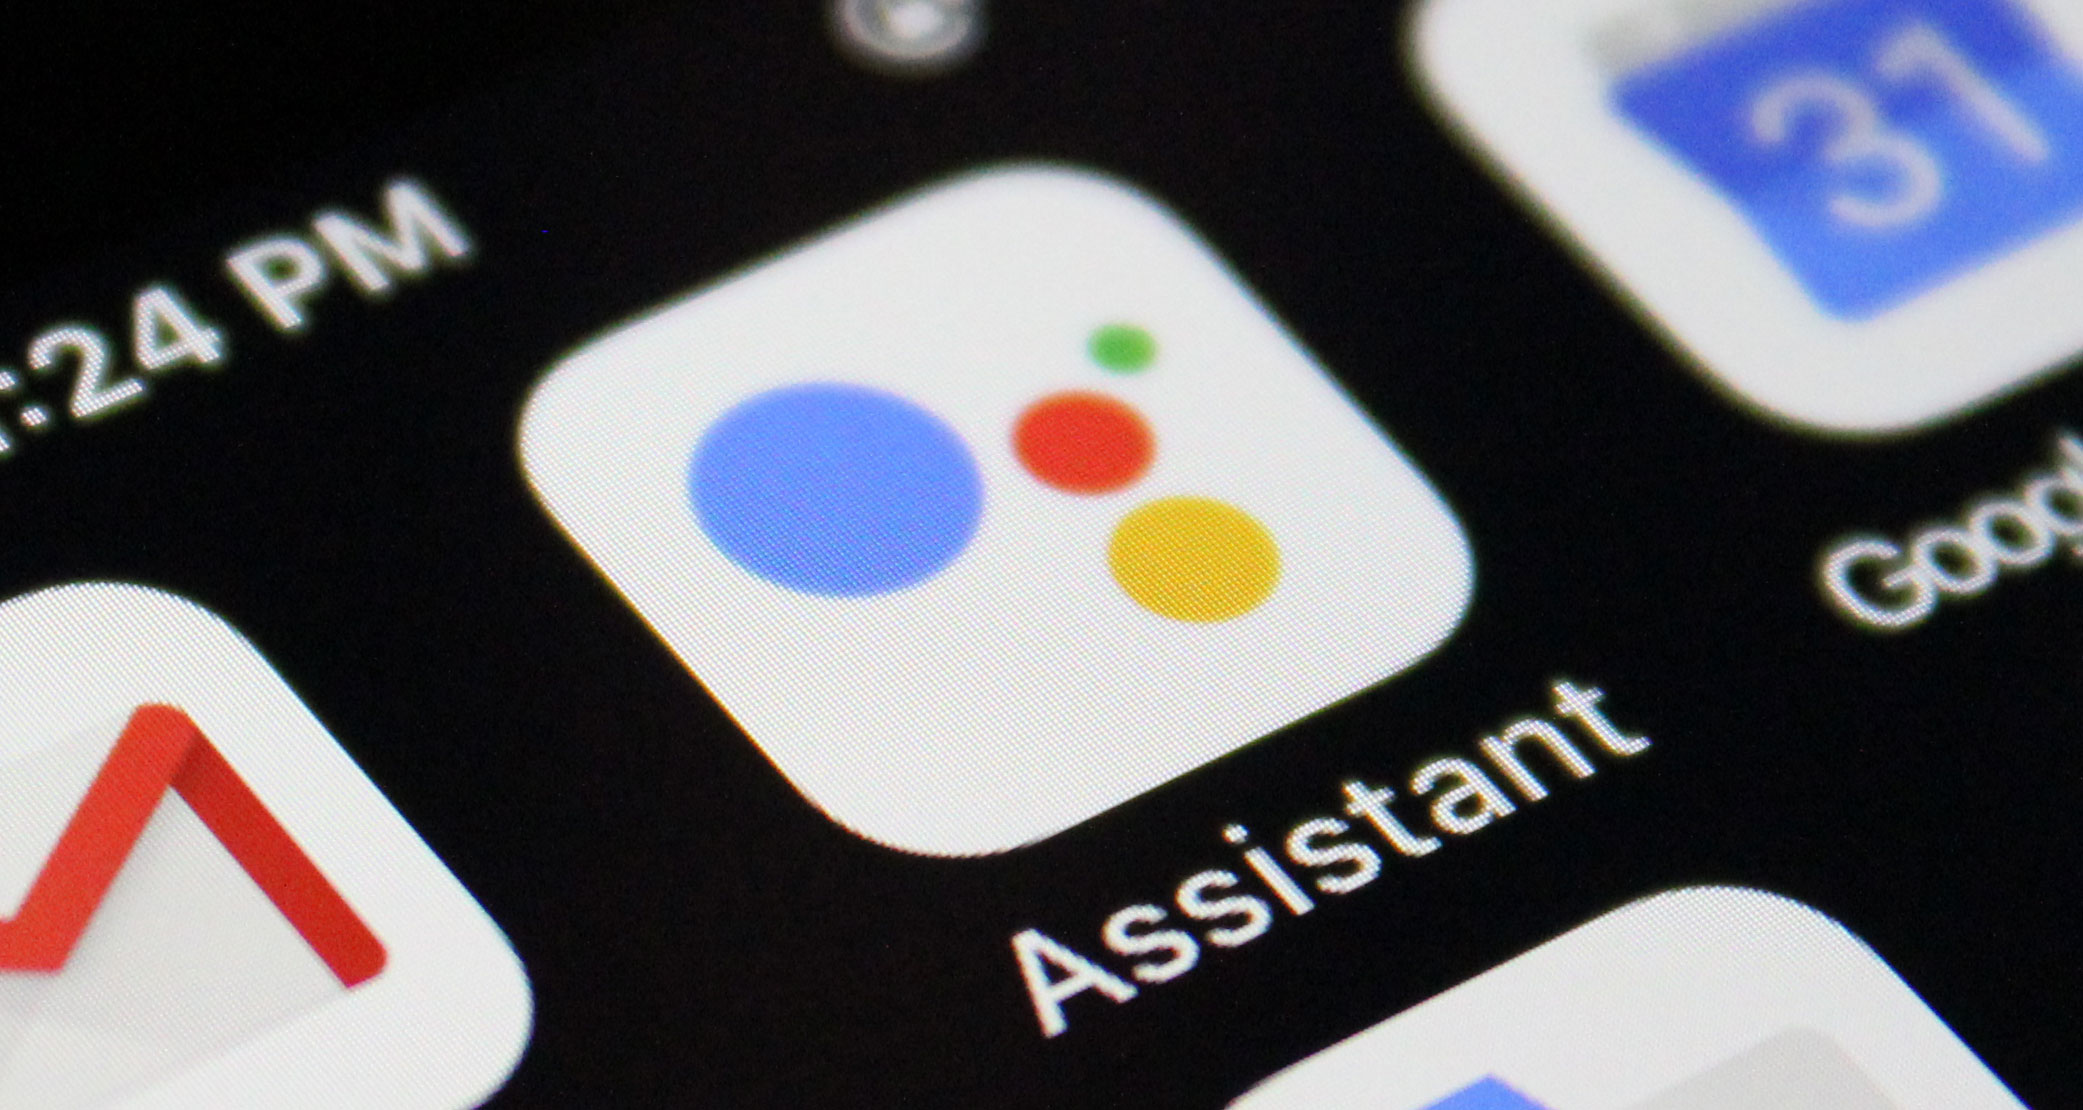 Google Assistant will scan your face to personalize commands